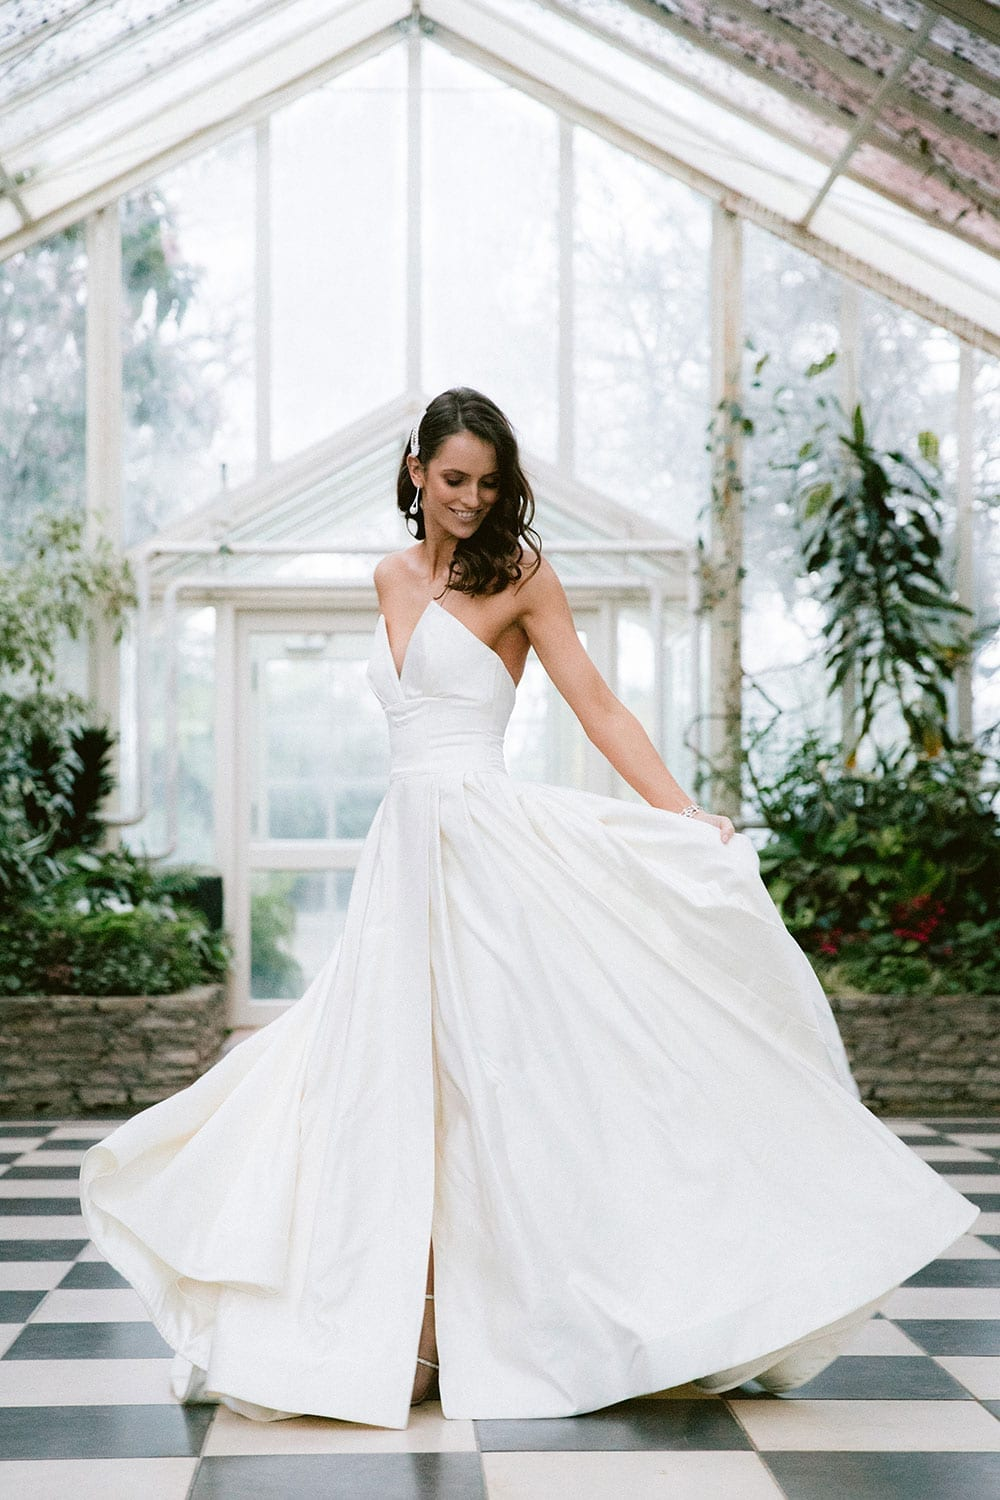 Model wearing Vinka Design Germaine Wedding Dress, a strapless dramatic wedding dress with split in a botanical garden greenhouse holding skirt out